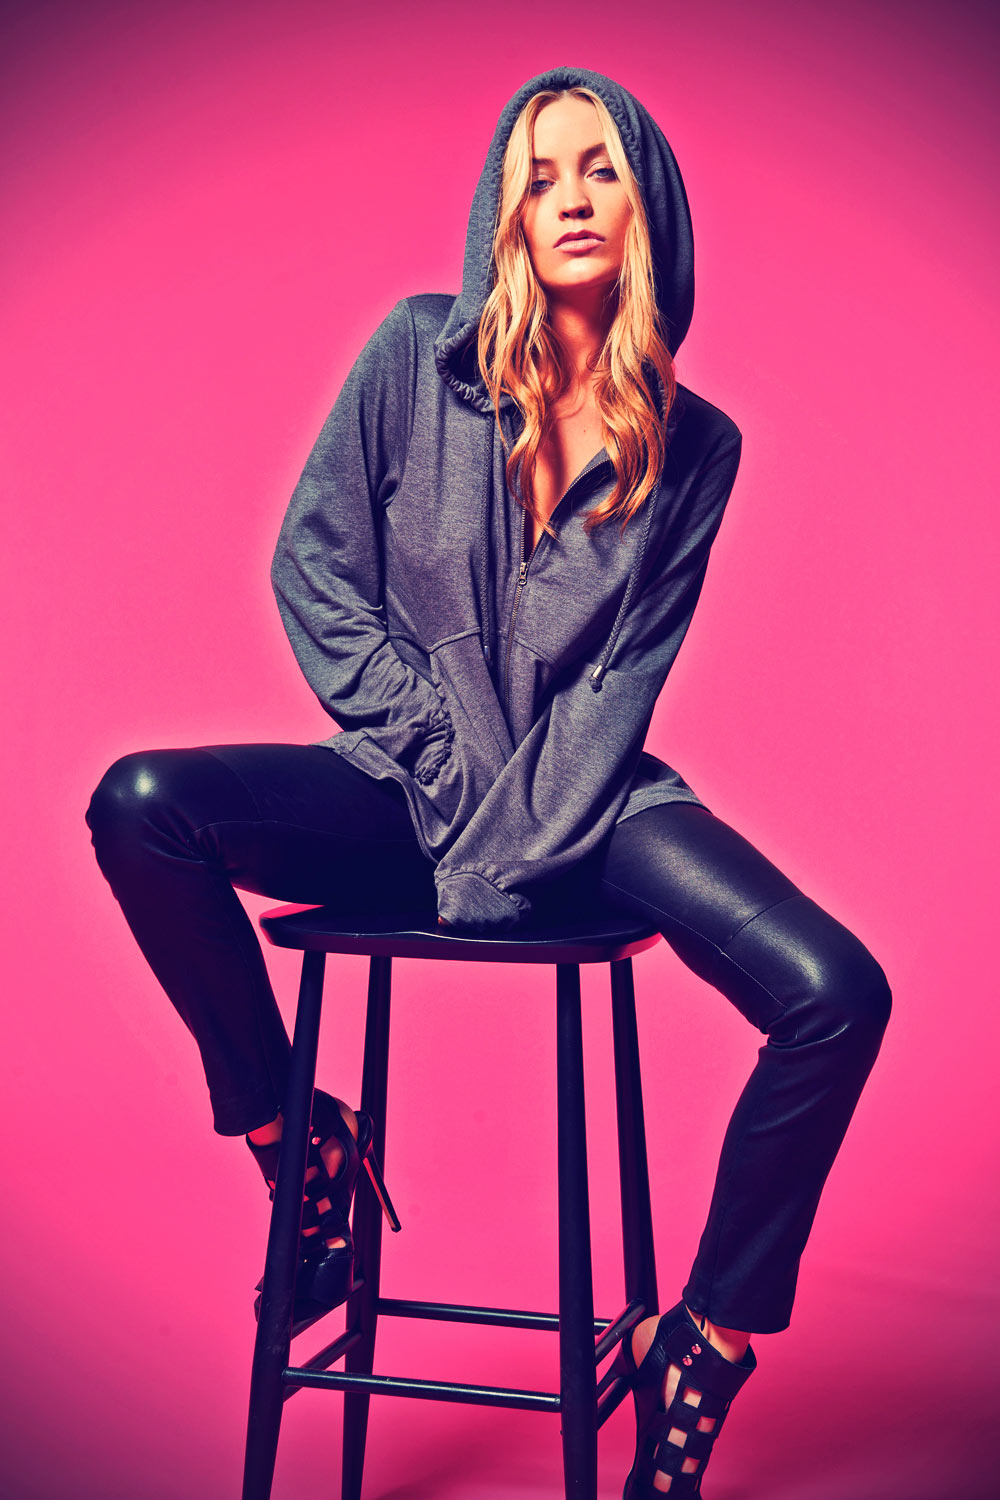 Laura Whitmore is face of G21 Talent